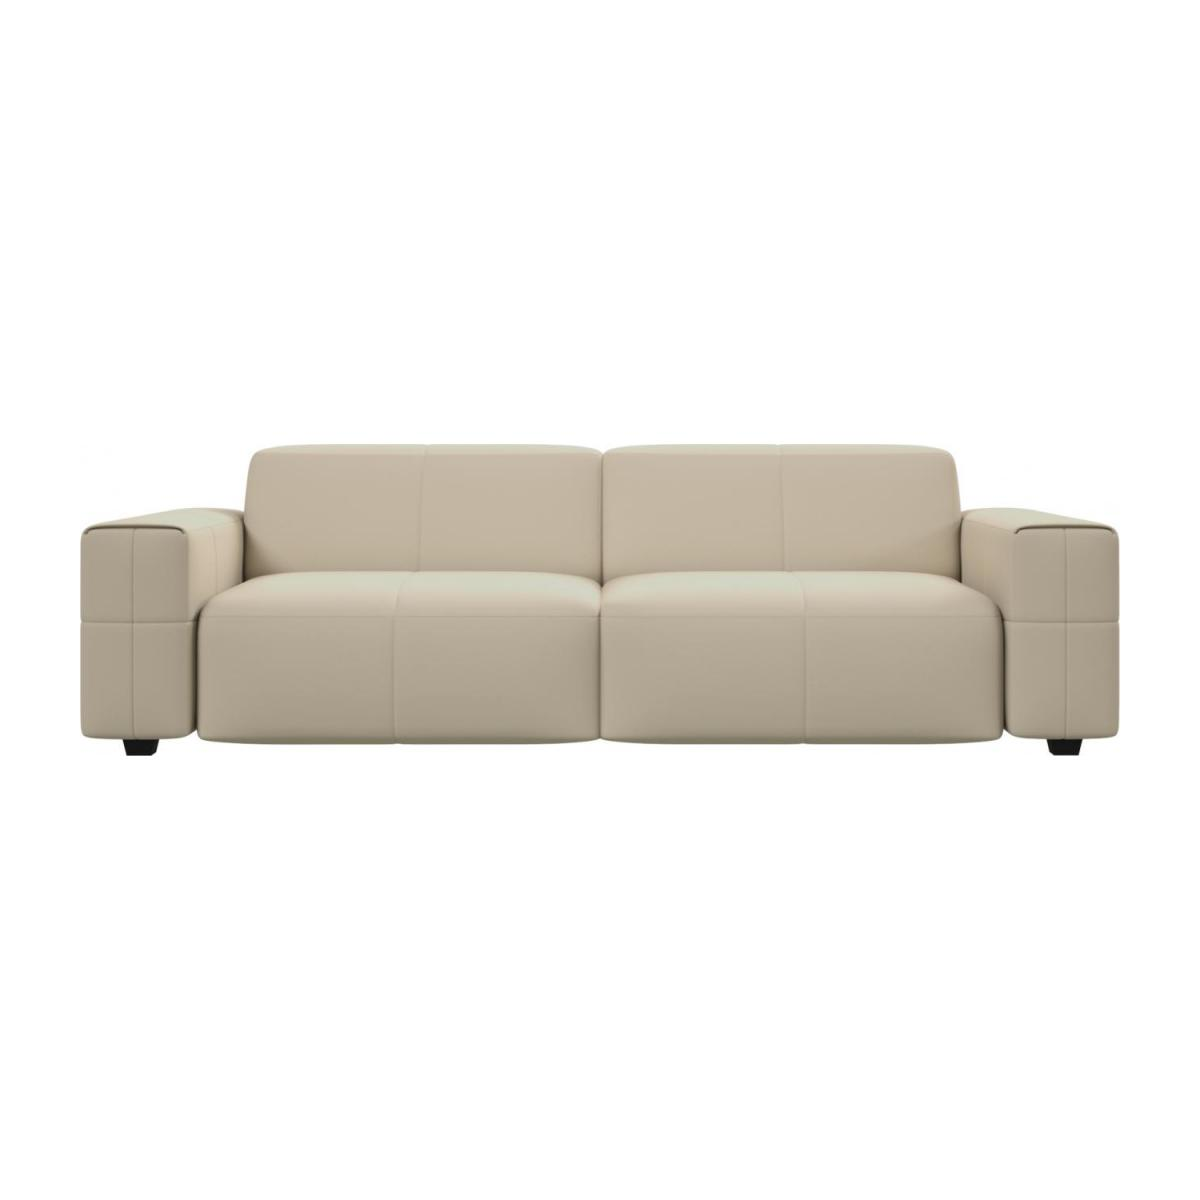 4 seater sofa in Savoy semi-aniline leather, off white n°2